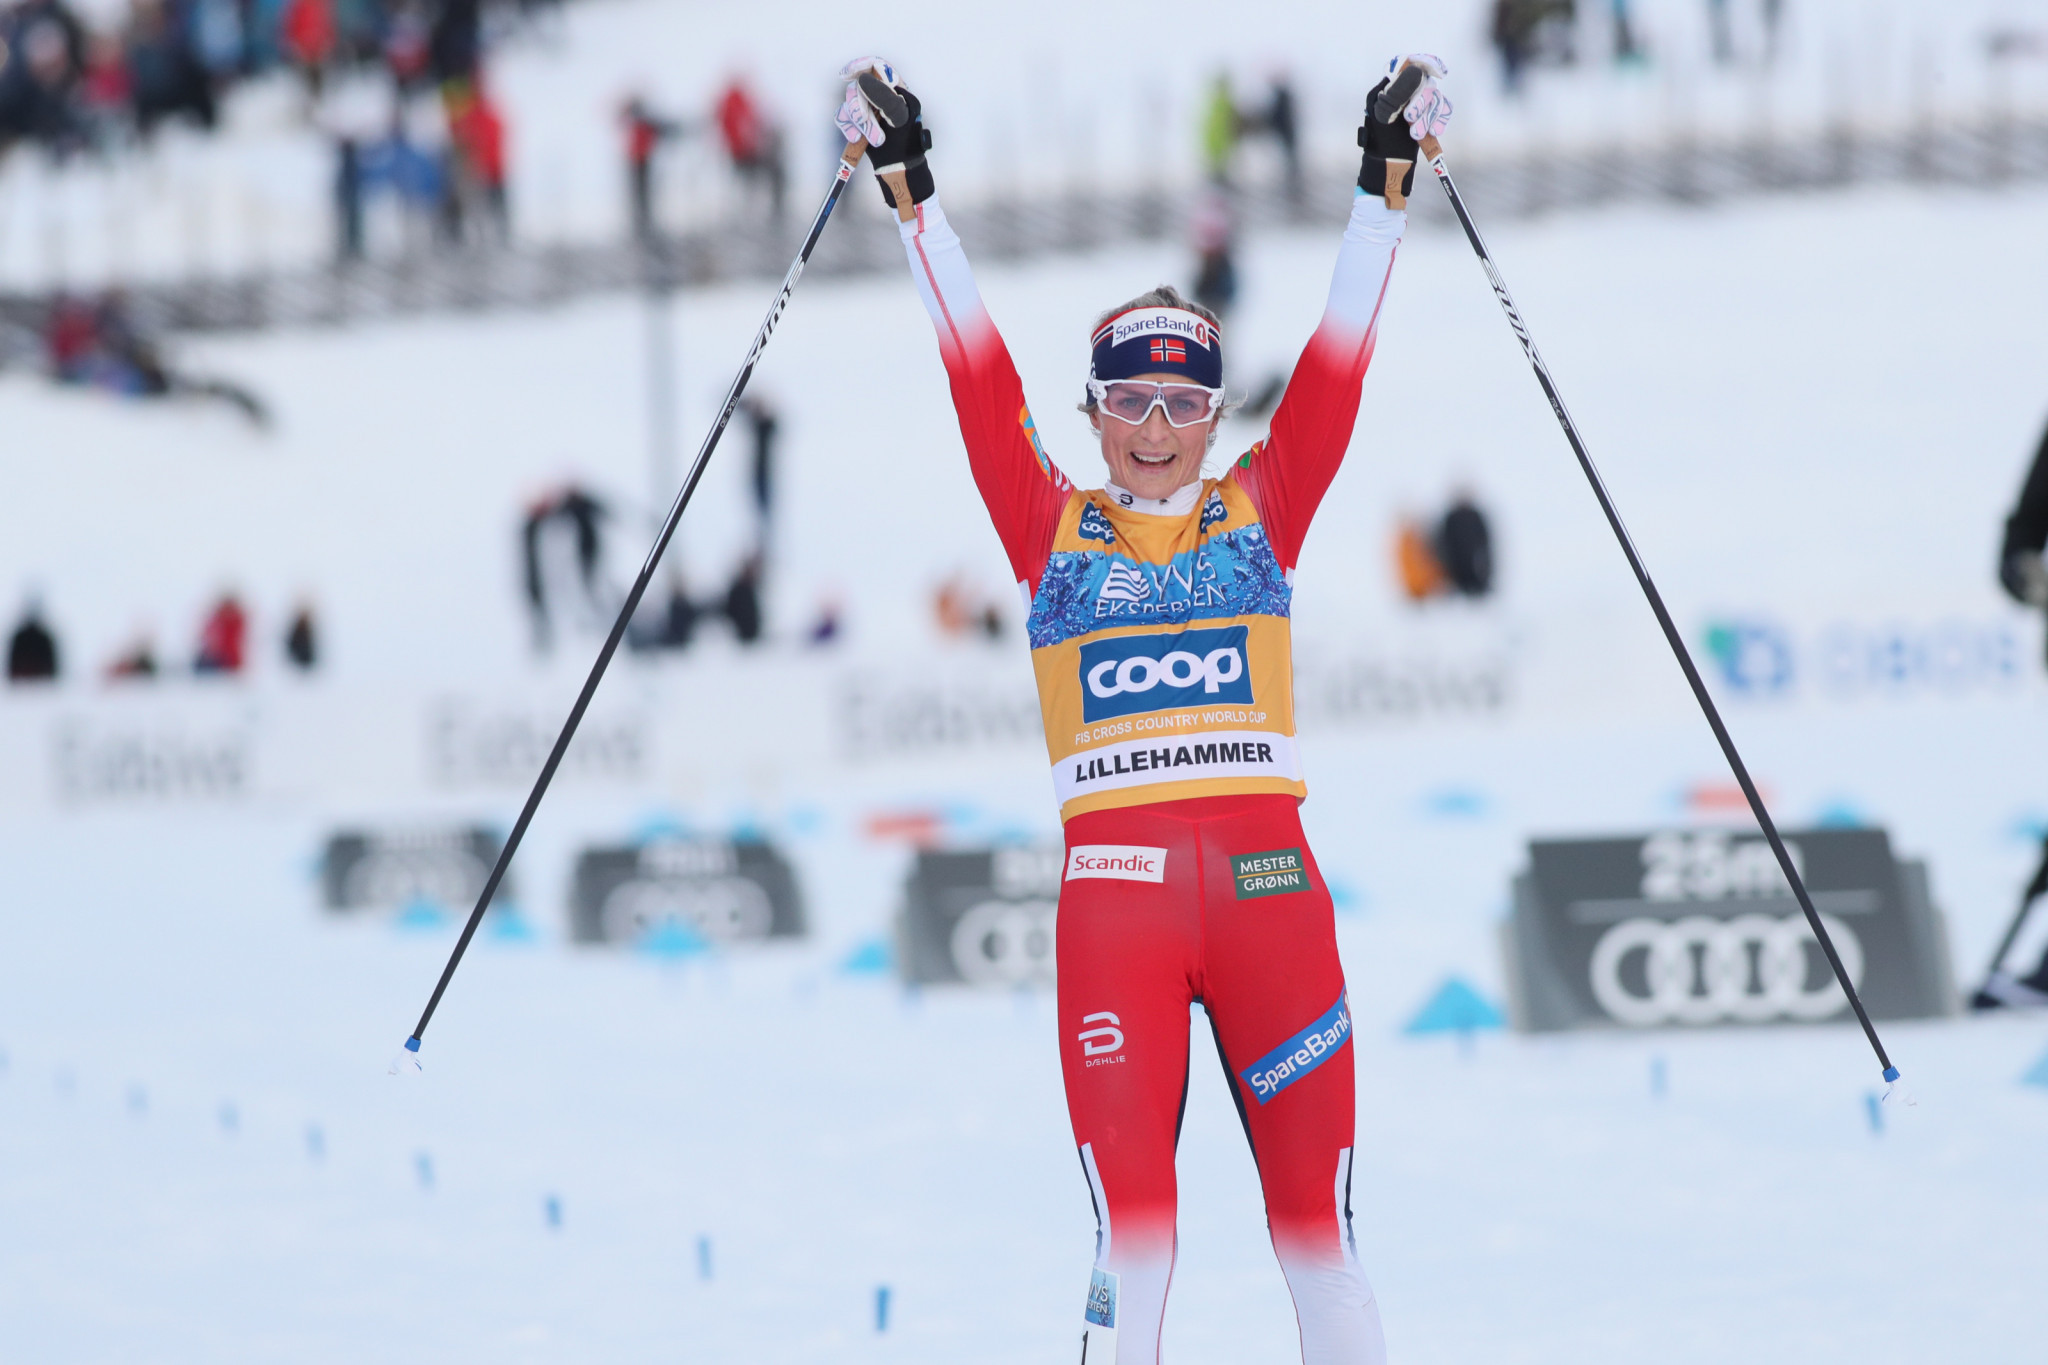 Johaug continues strong form with victory in opening Tour de Ski event